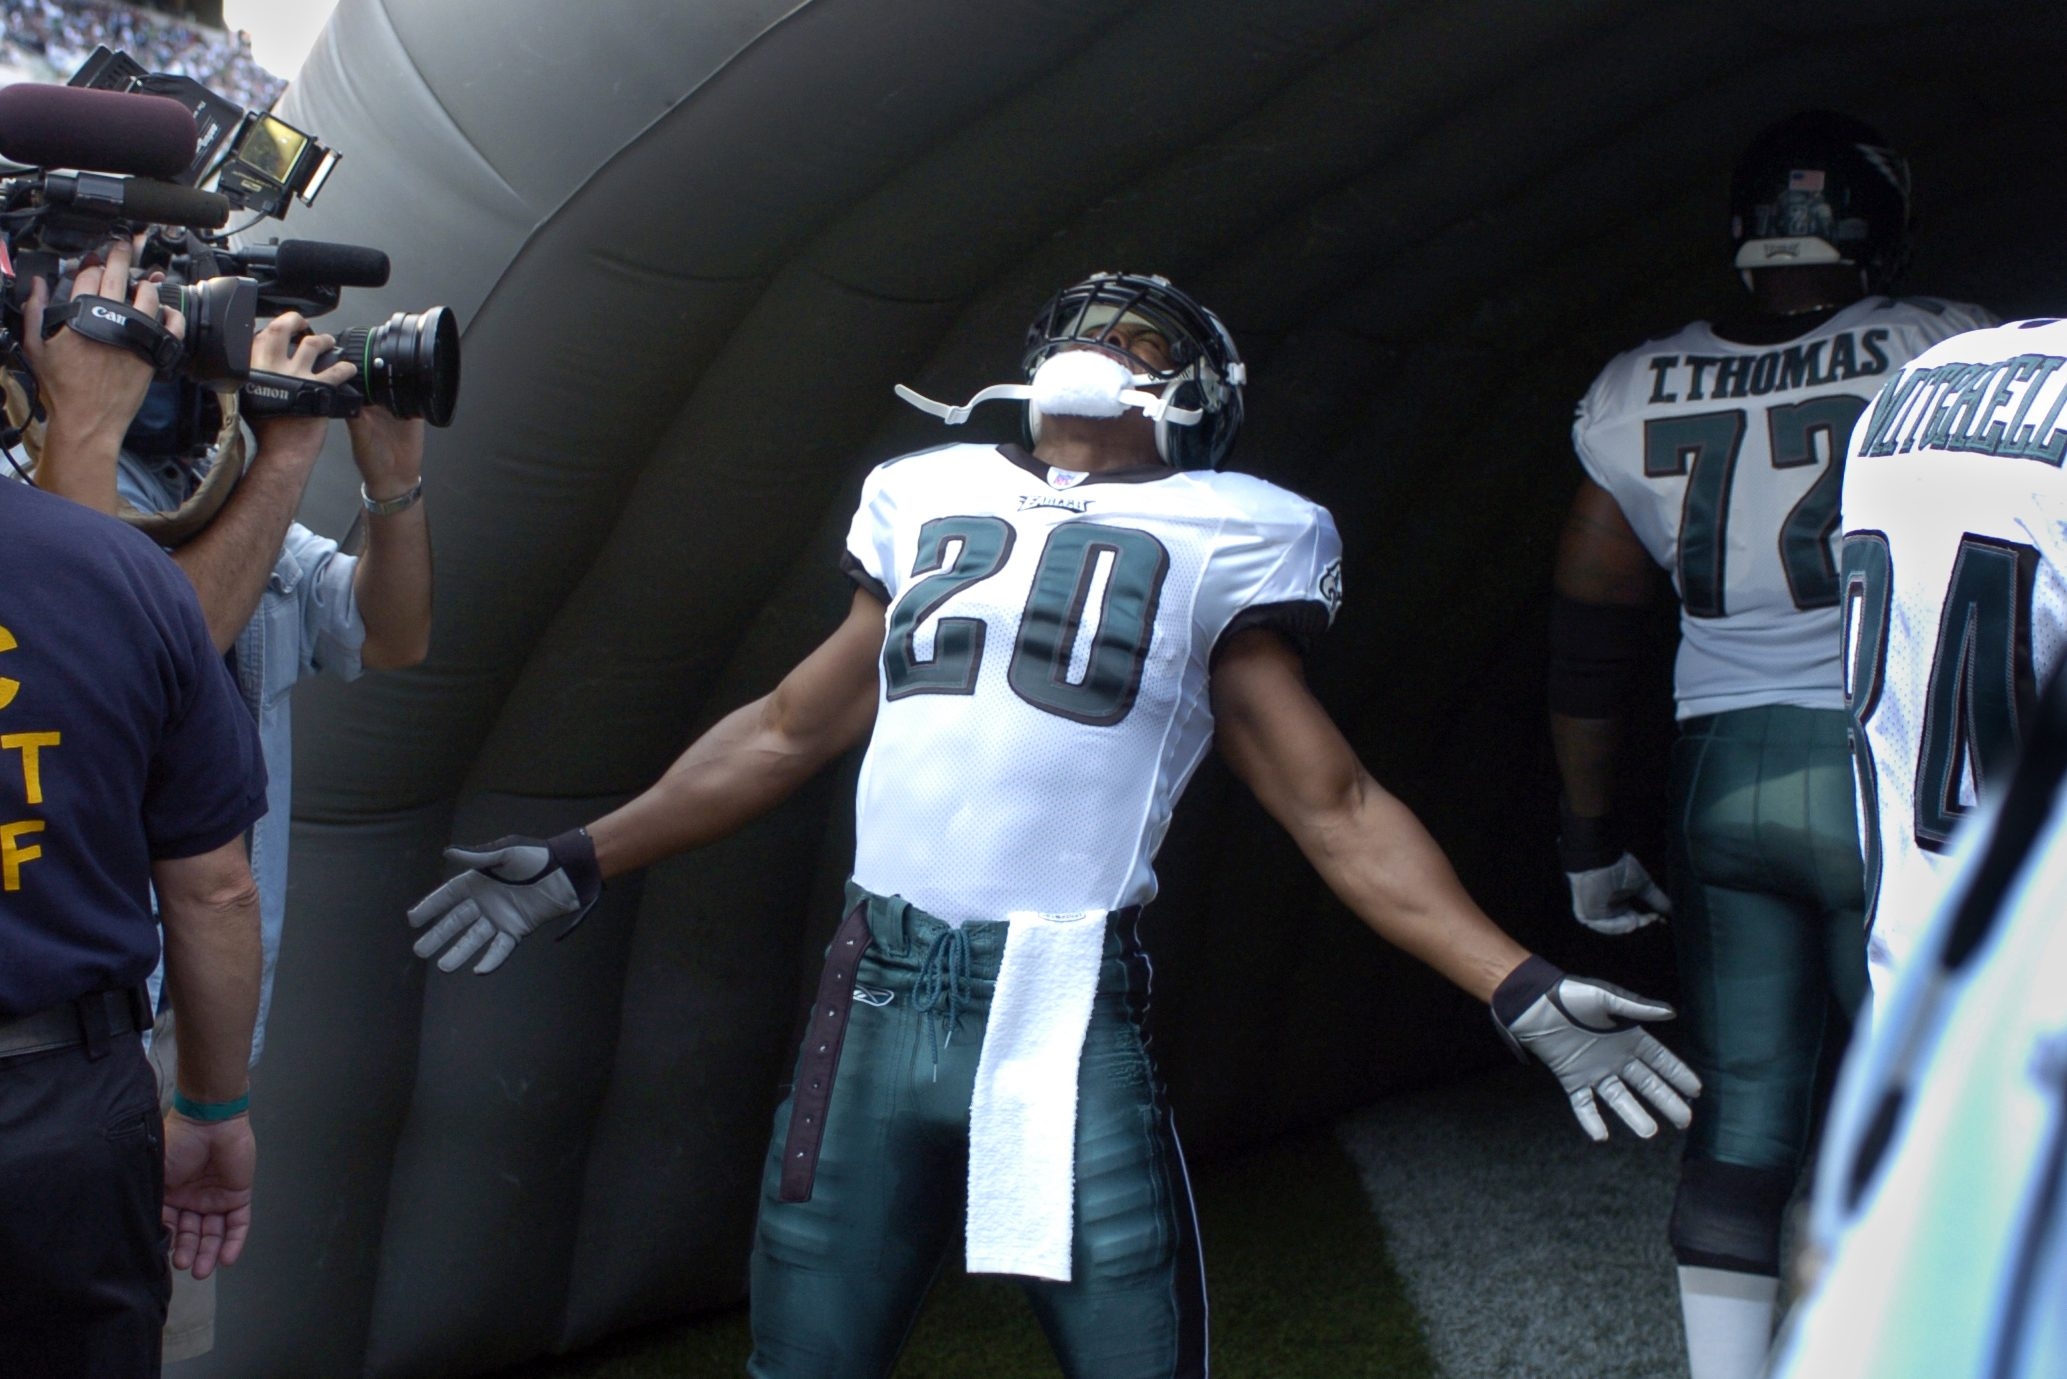 Brian Dawkins is entering the Pro Football Hall of Fame.